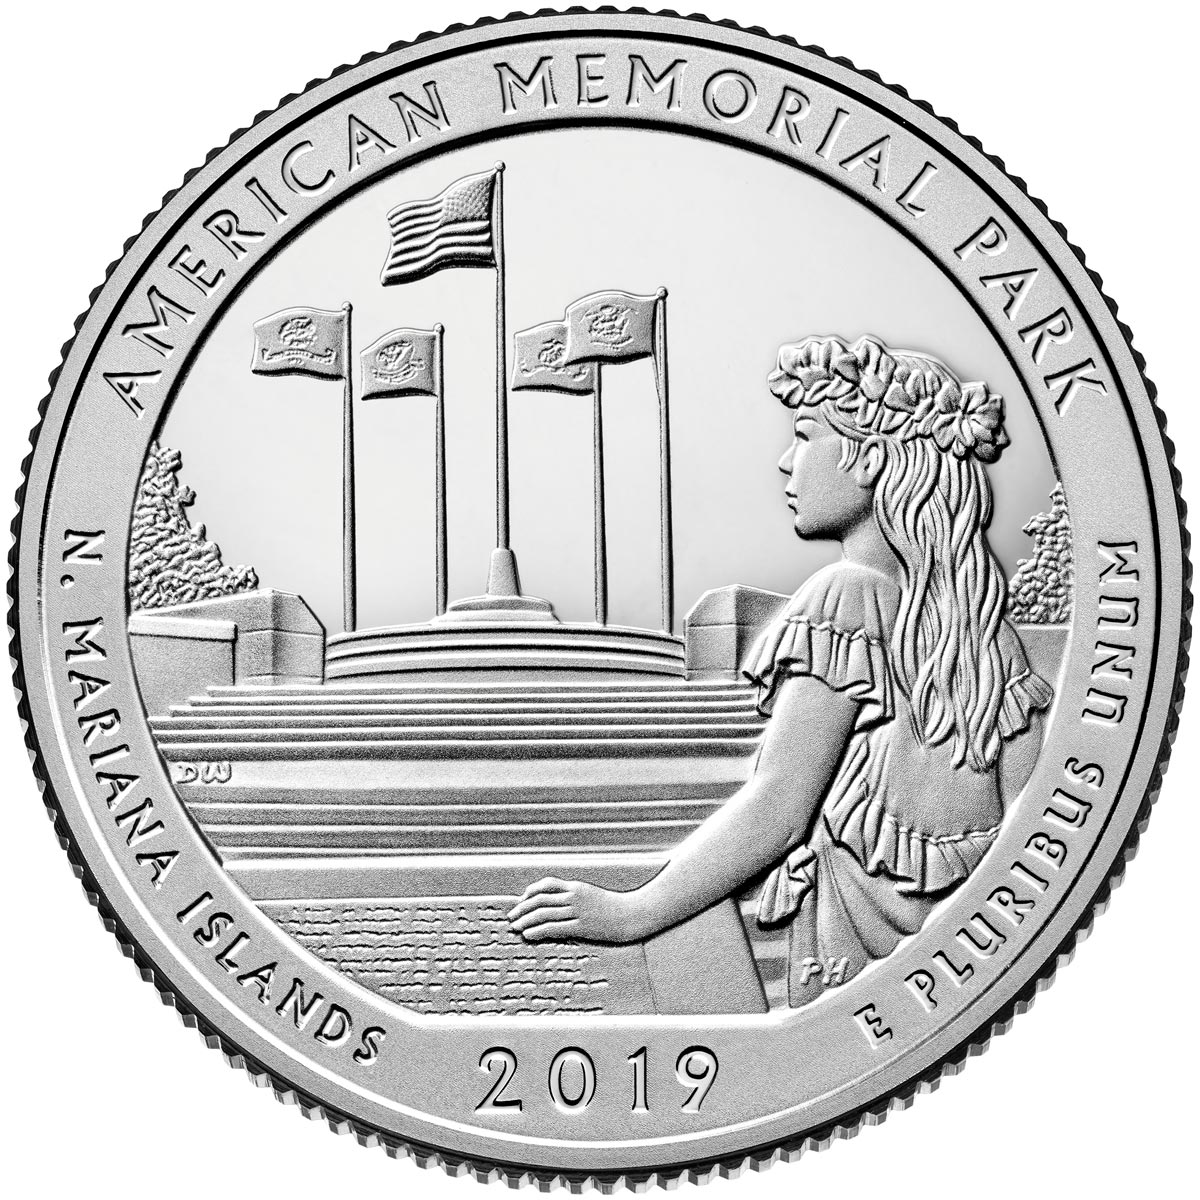 America The Beautiful Quarters The 25 Cents Coin Series From Usa